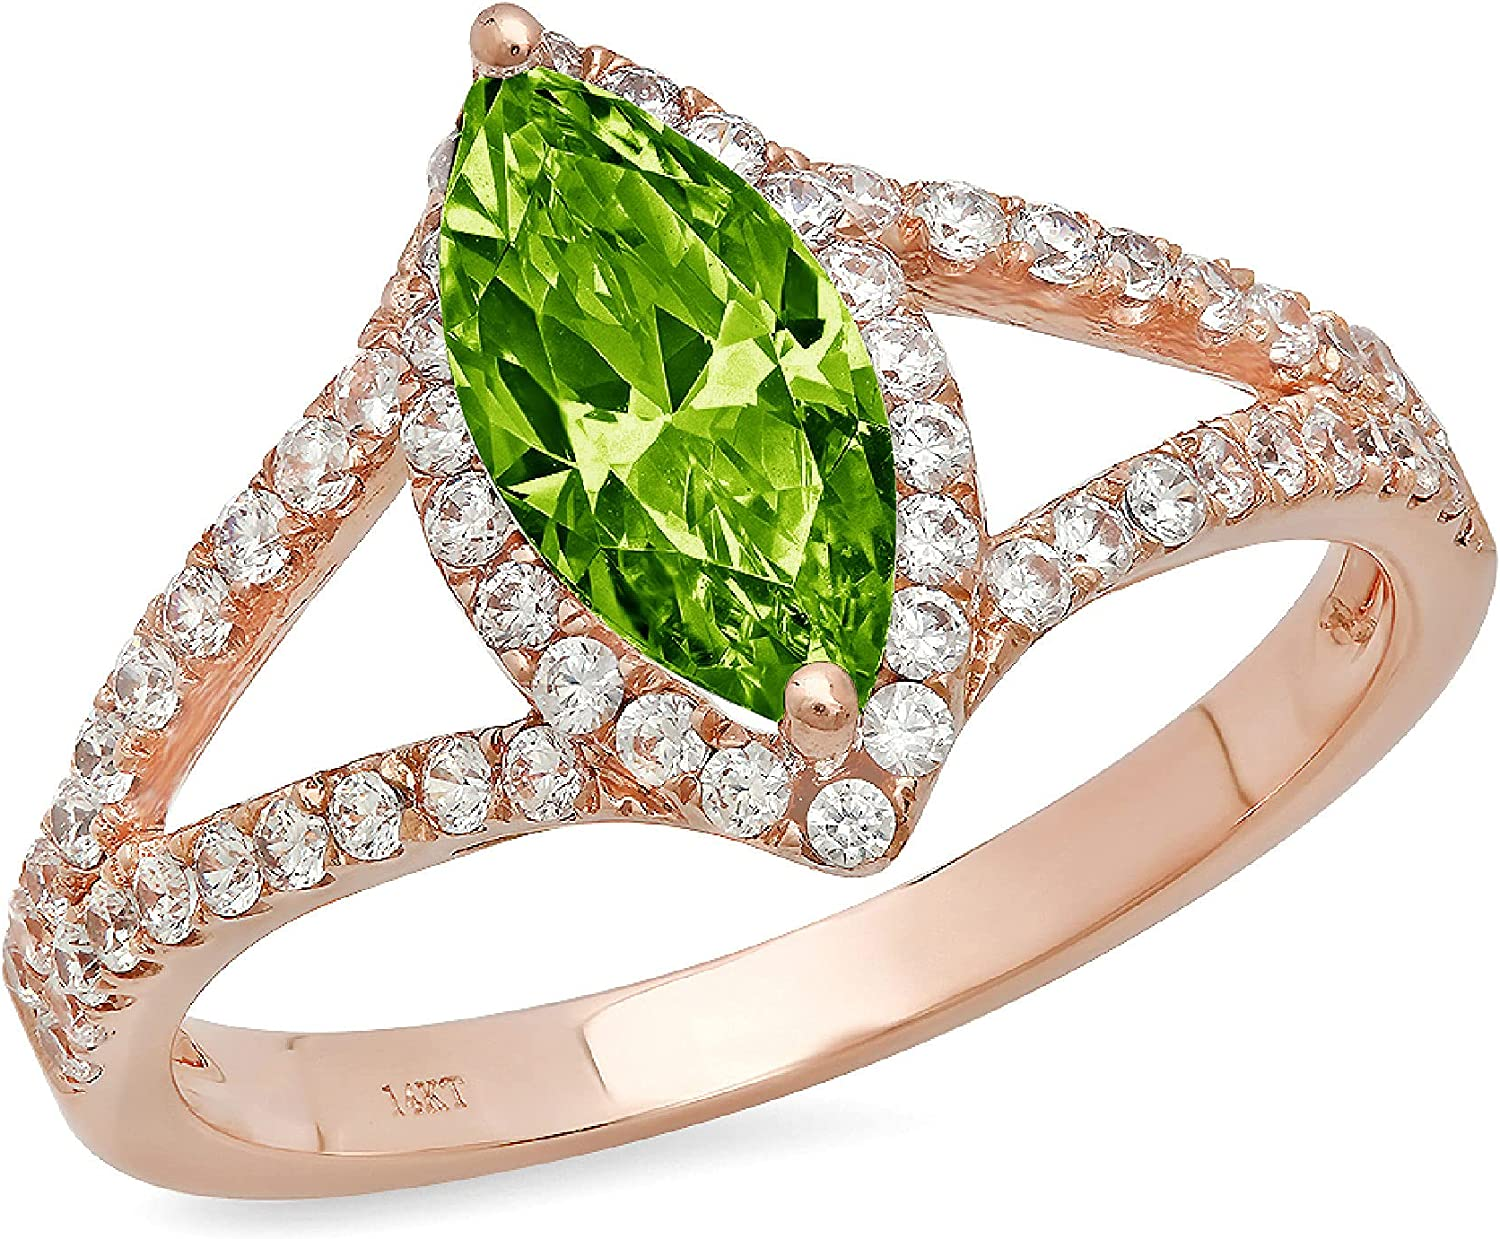 1.14ct Marquise Cut Solitaire with Accent split shank Halo Genuine Natural Vivid Green Peridot Gemstone Ideal VVS1 Engagement Promise Statement Anniversary Bridal Wedding ring 14k Pink Rose Gold